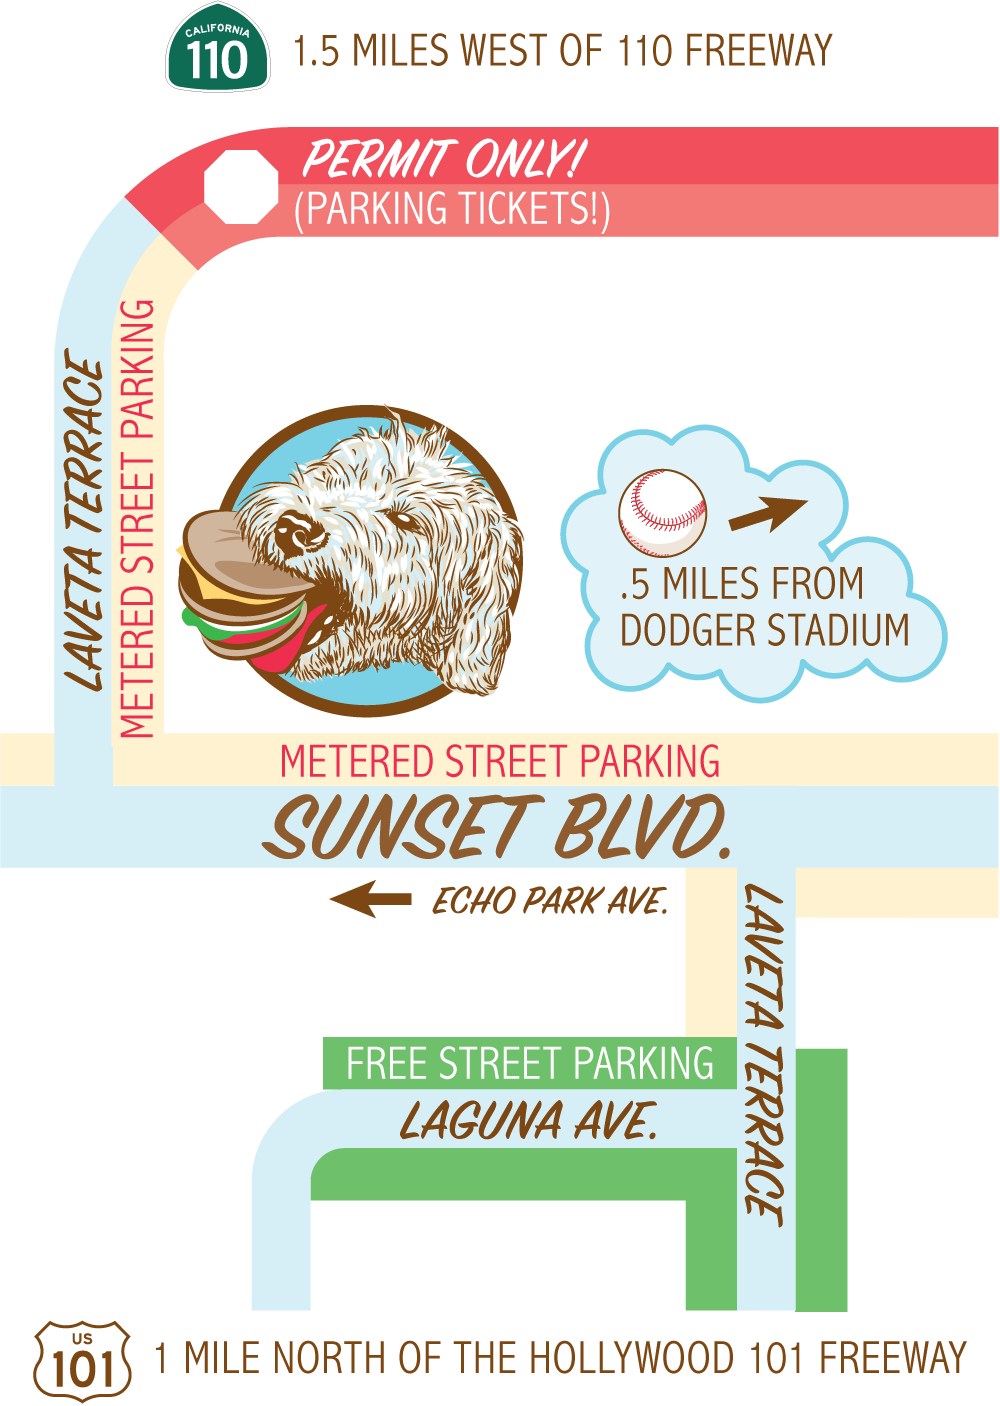 Illustrated map showing the location of Monty's Echo Park location on Sunset Blvd and Laveta Terrace 11 mile north of the Hollywood 101 freeway and approximately 0.5 miles from Dodger Stadium. Free street parking on Laguna Ave and Laveta Terrace. Metered street parking on Sunset Blvd and Laveta Terrace. Permit only parking (parking tickets) on the north part of Laveta Terrrace.